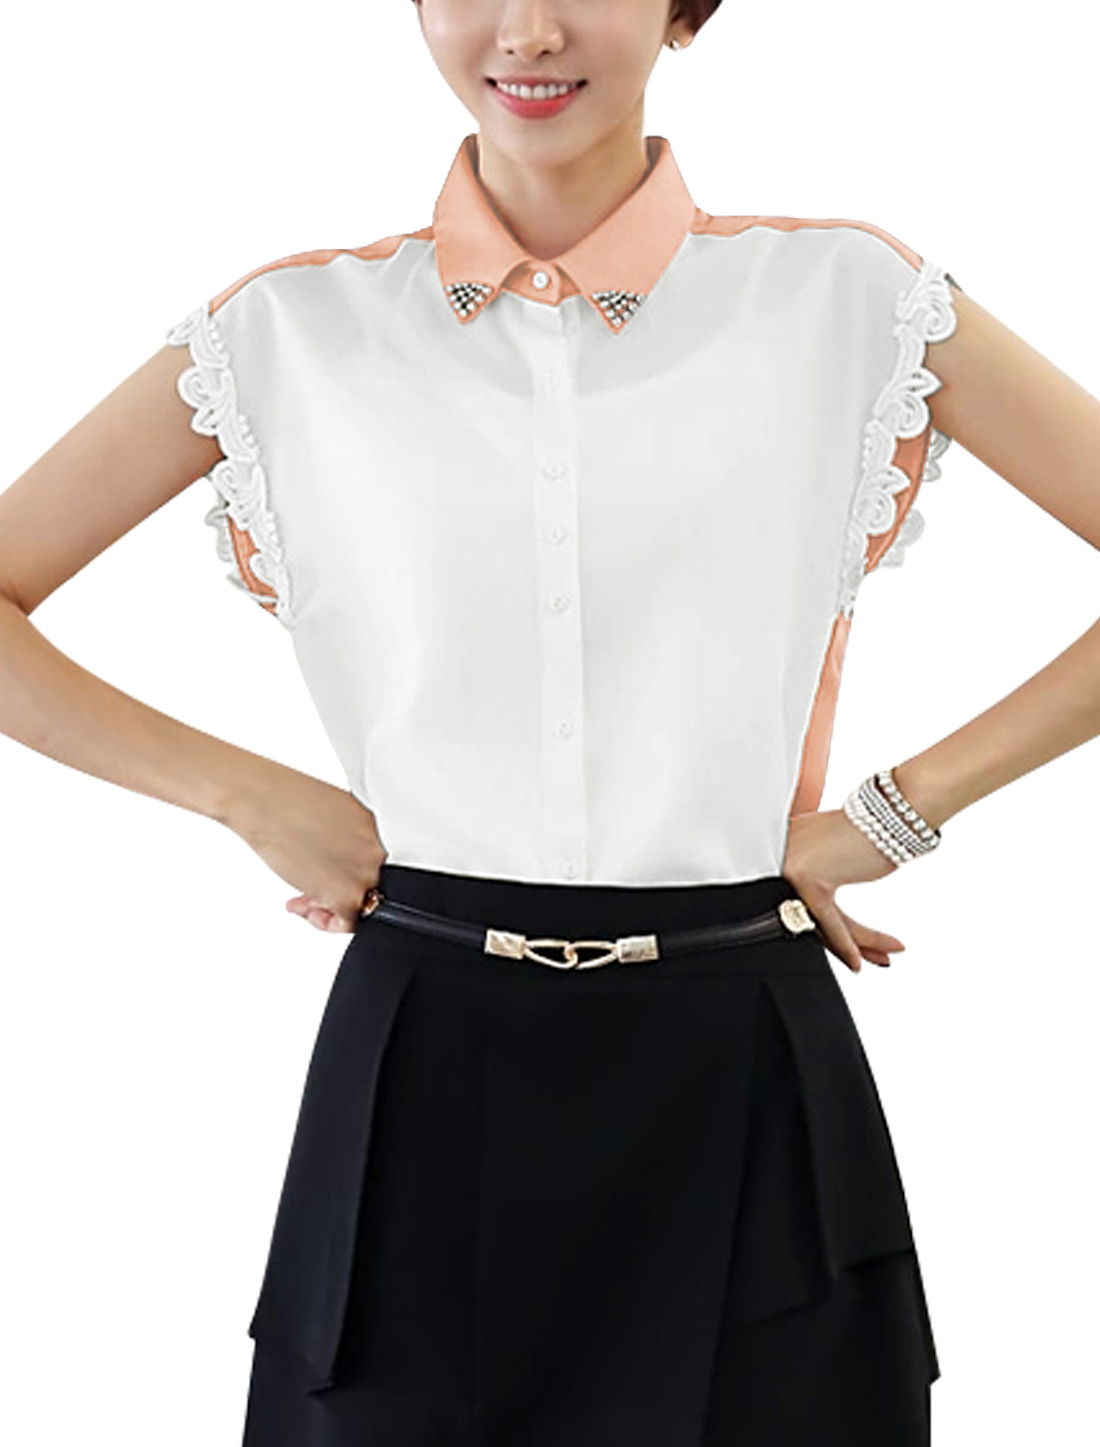 Women Scalloped Trim Color Block Elegant Chiffon Top Shirt Pale Pink White S